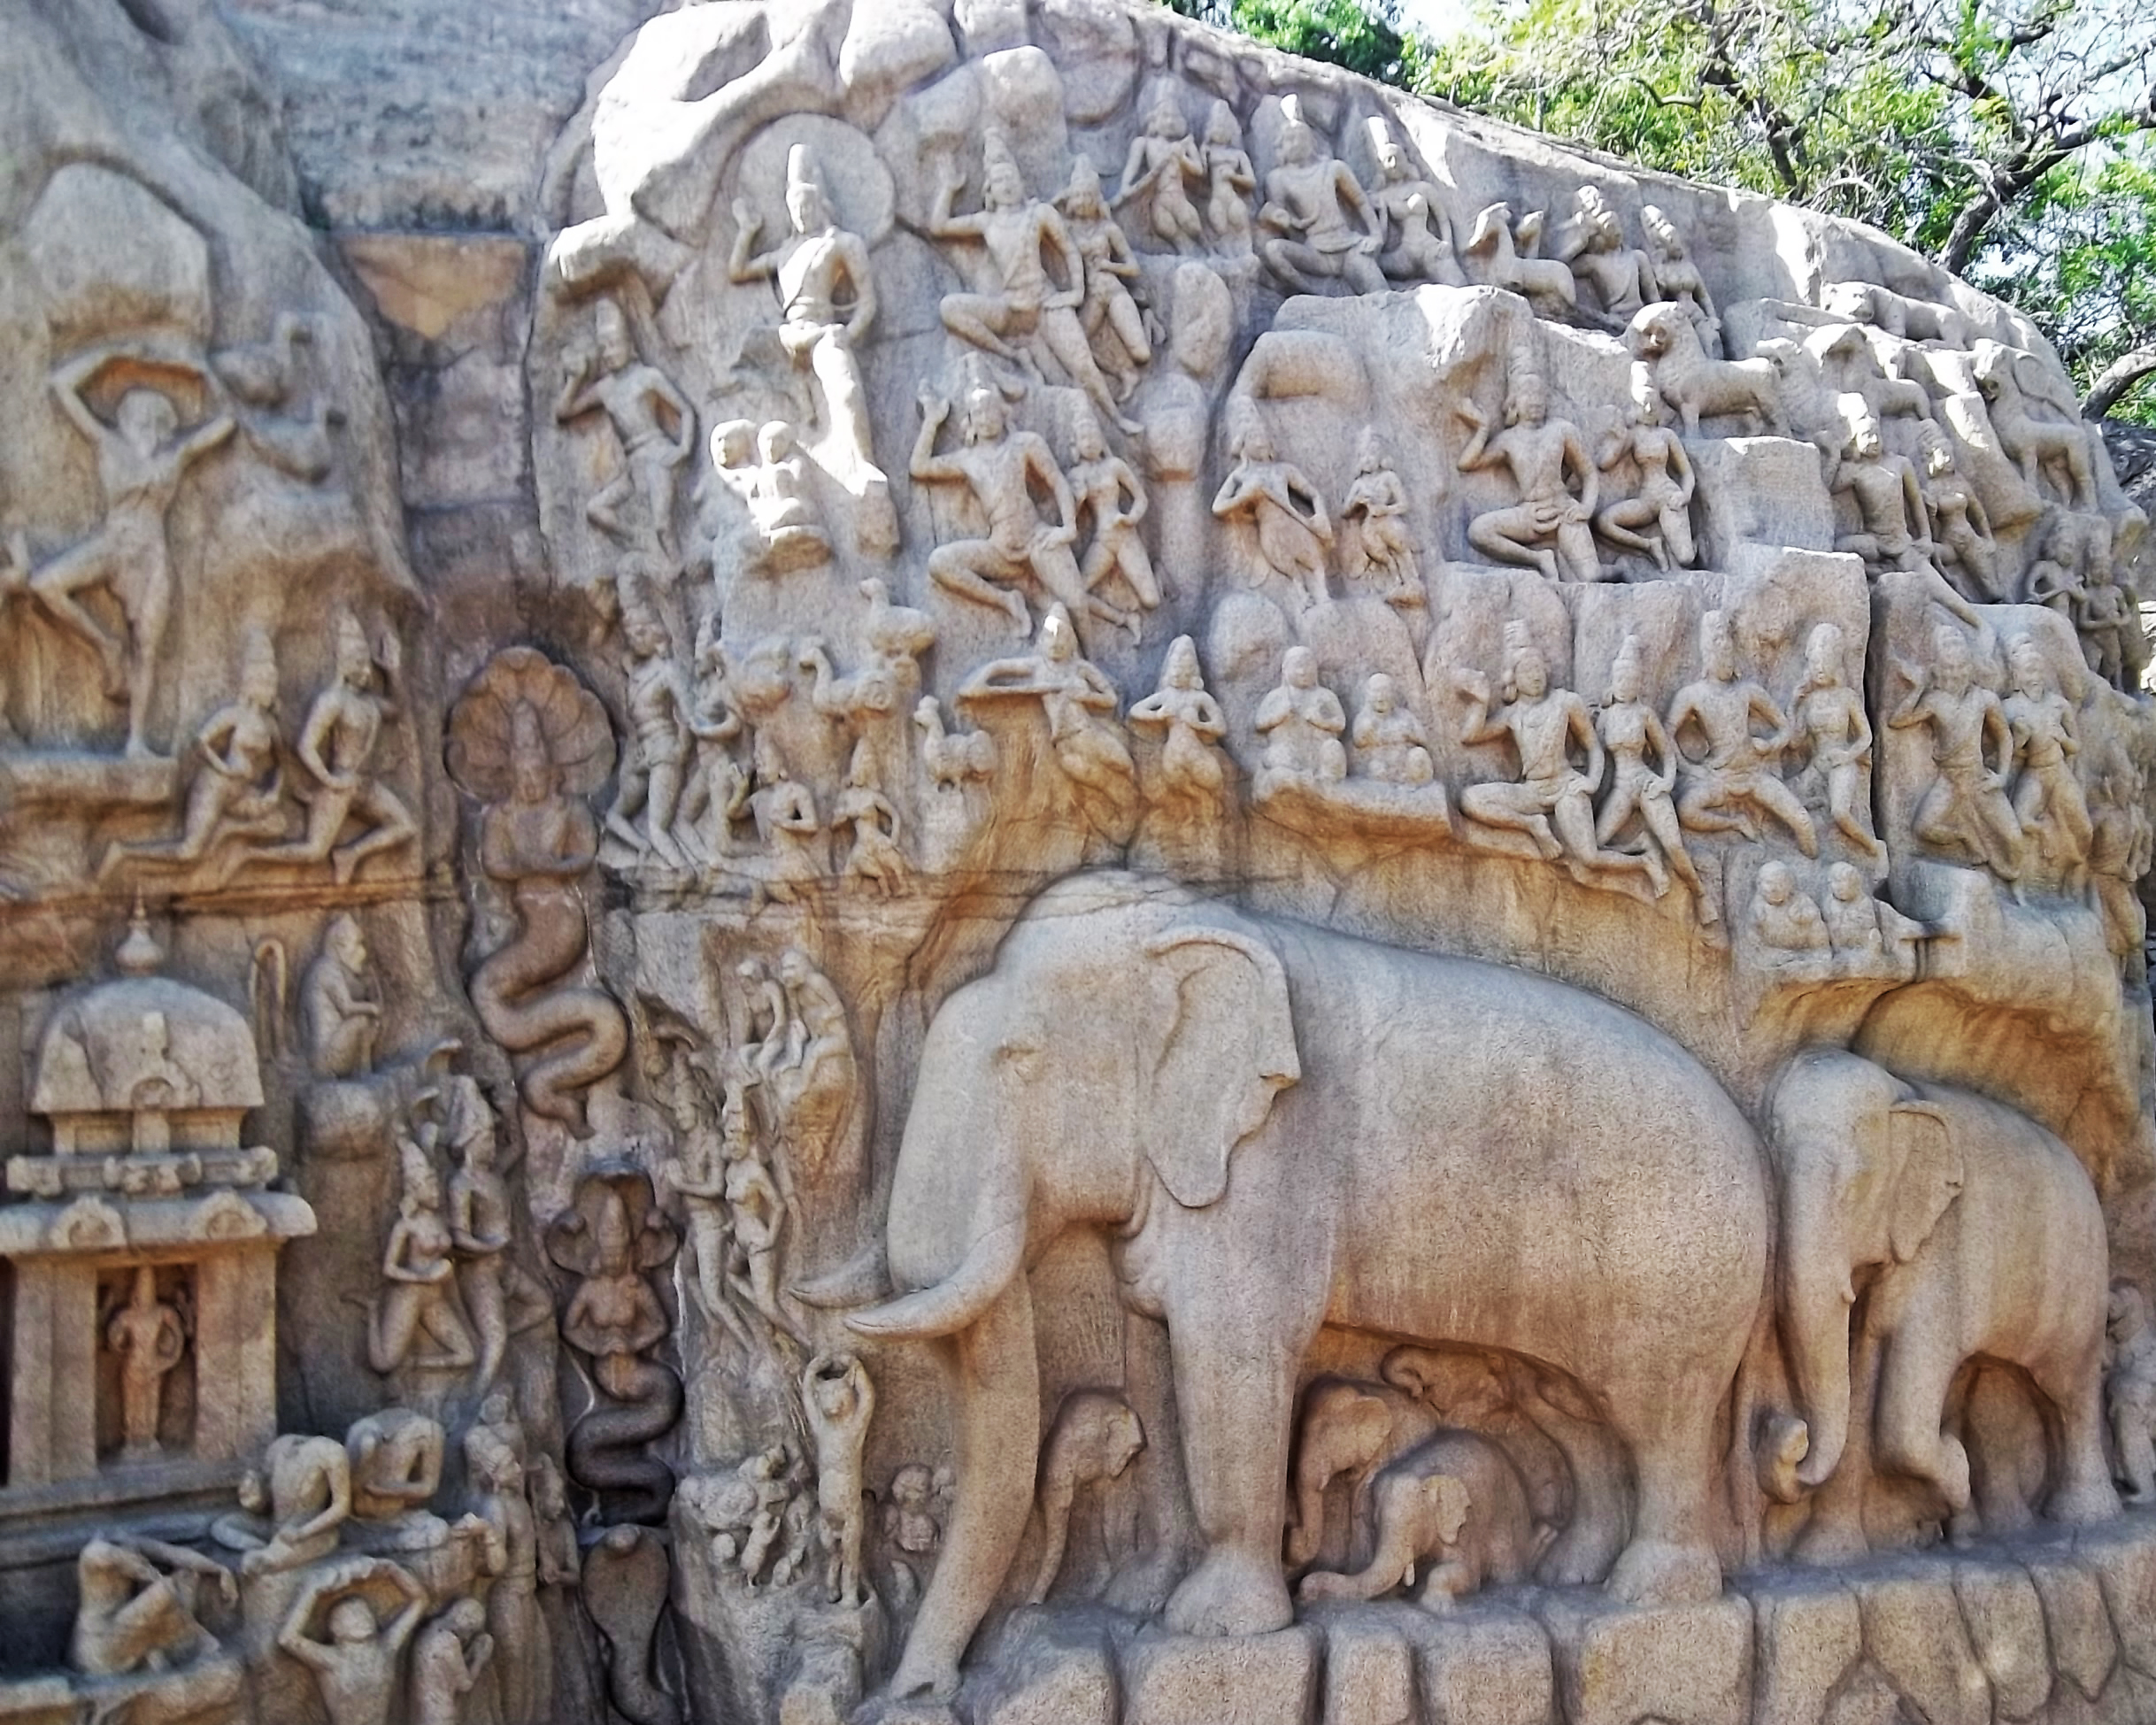 File stone sculpture representing the group of elephants